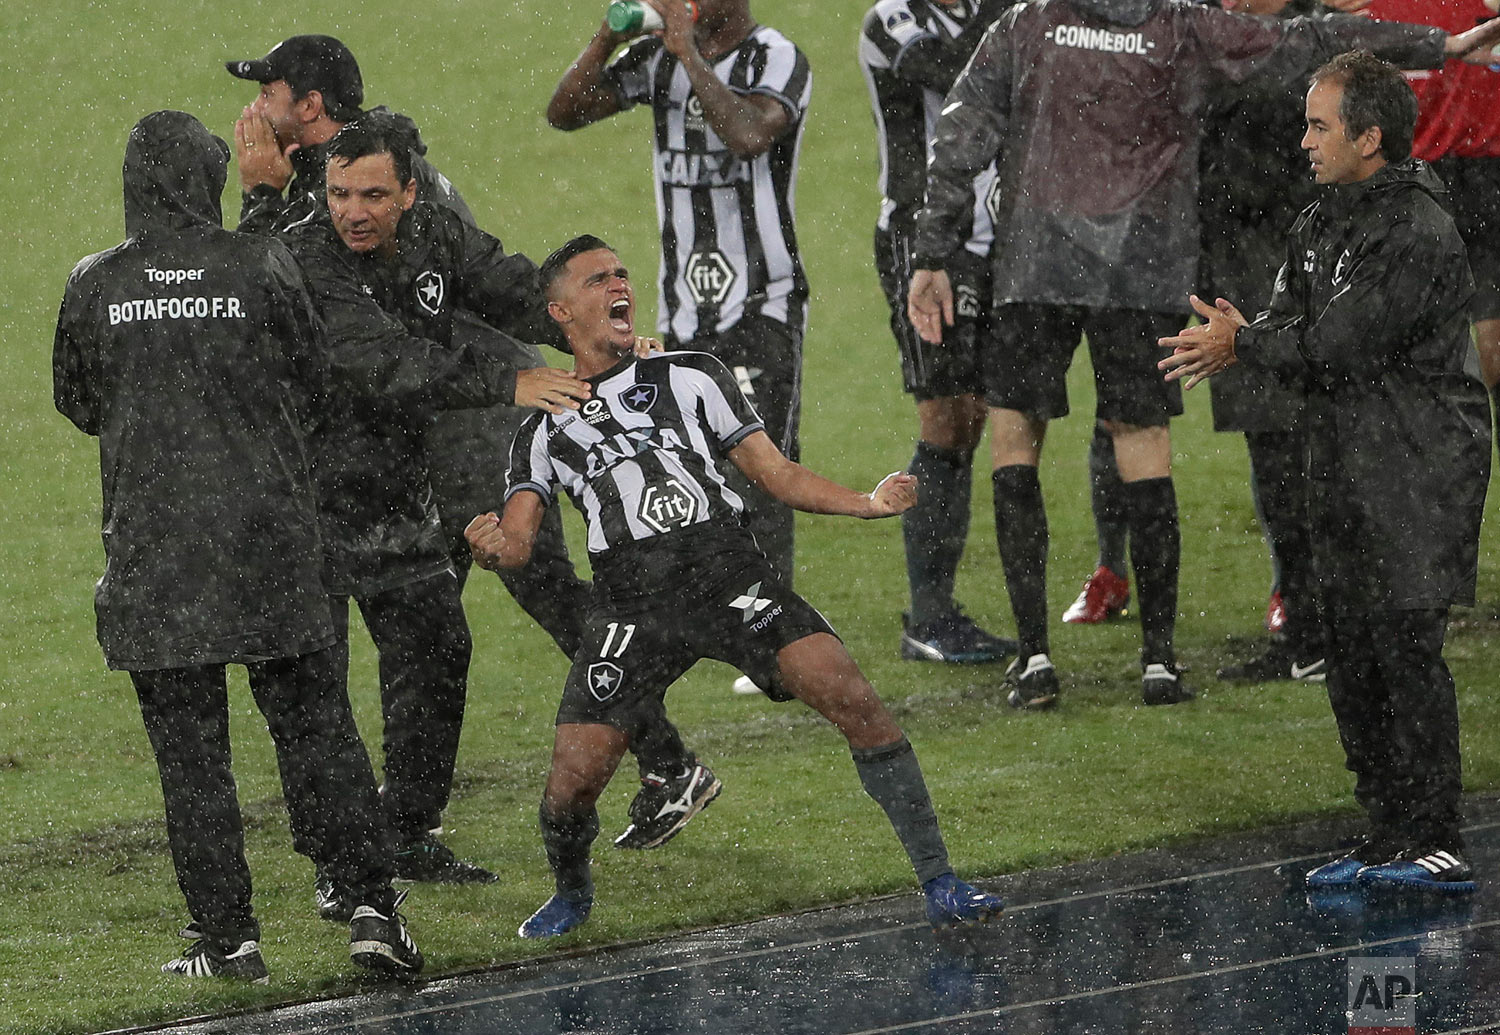 Erik of Brazil's Botafogo celebrates scoring his side's first goal during a Copa Sudamericana soccer match against Argentina's Defensa y Justicia, in Rio de Janeiro, Brazil, on a rainy Feb. 6, 2019. (AP Photo/Silvia Izquierdo)